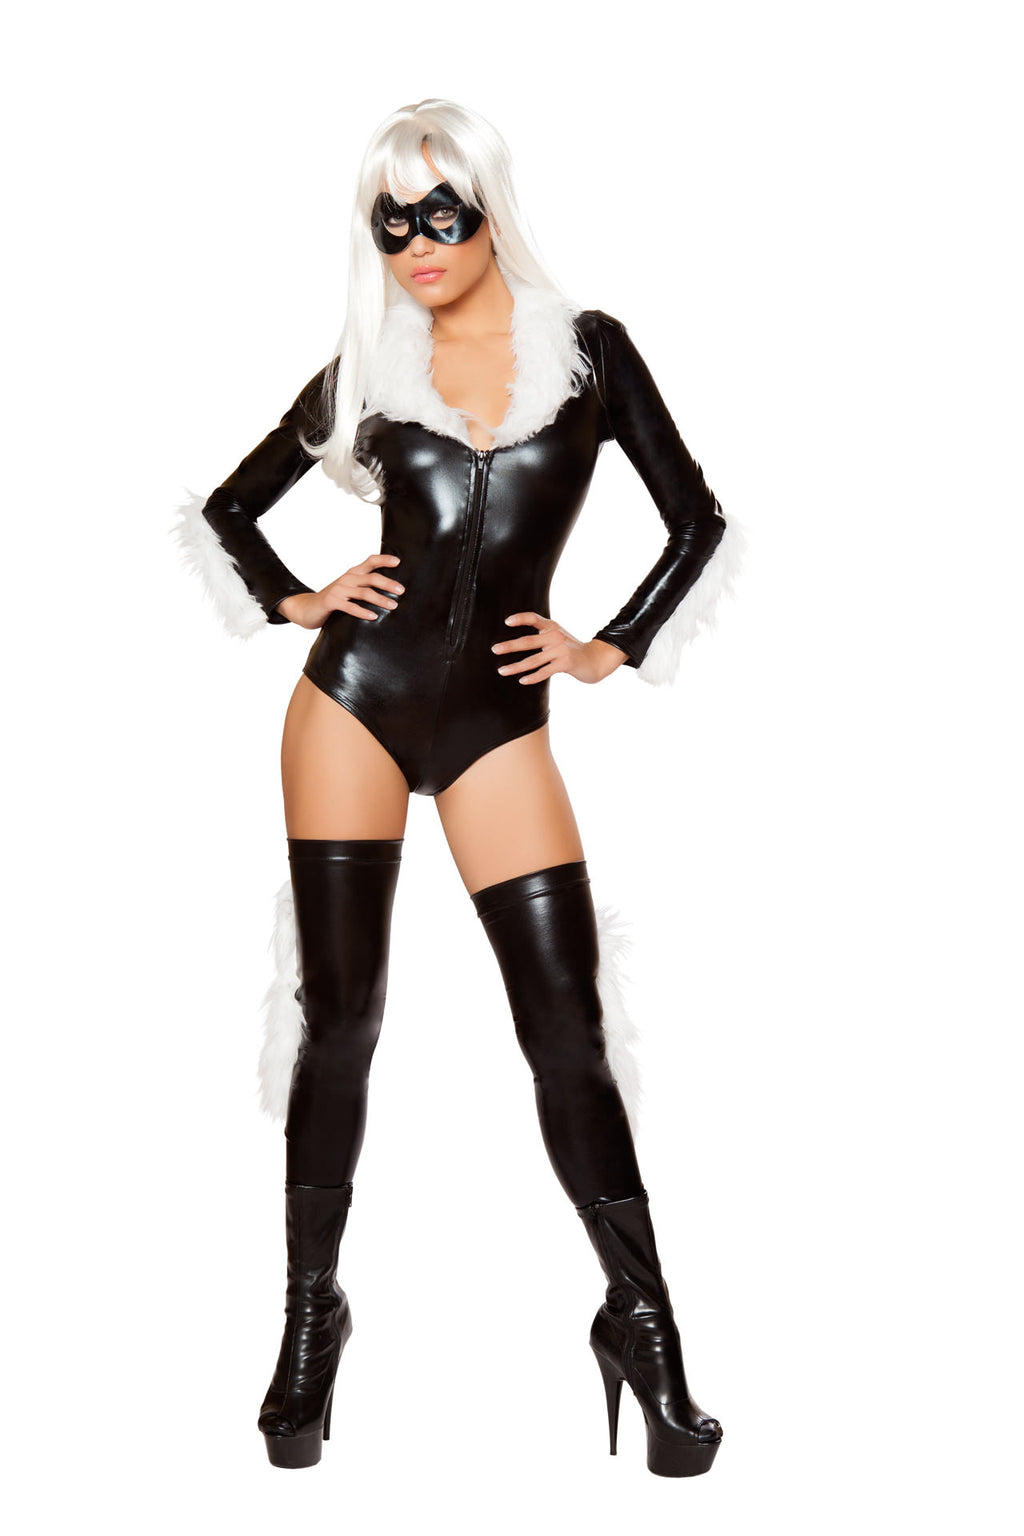 3-PC-Spider-Black-Cat-Lady-Black-Fur-Romper-w/-Stockings-&-Mask-Party-Costume